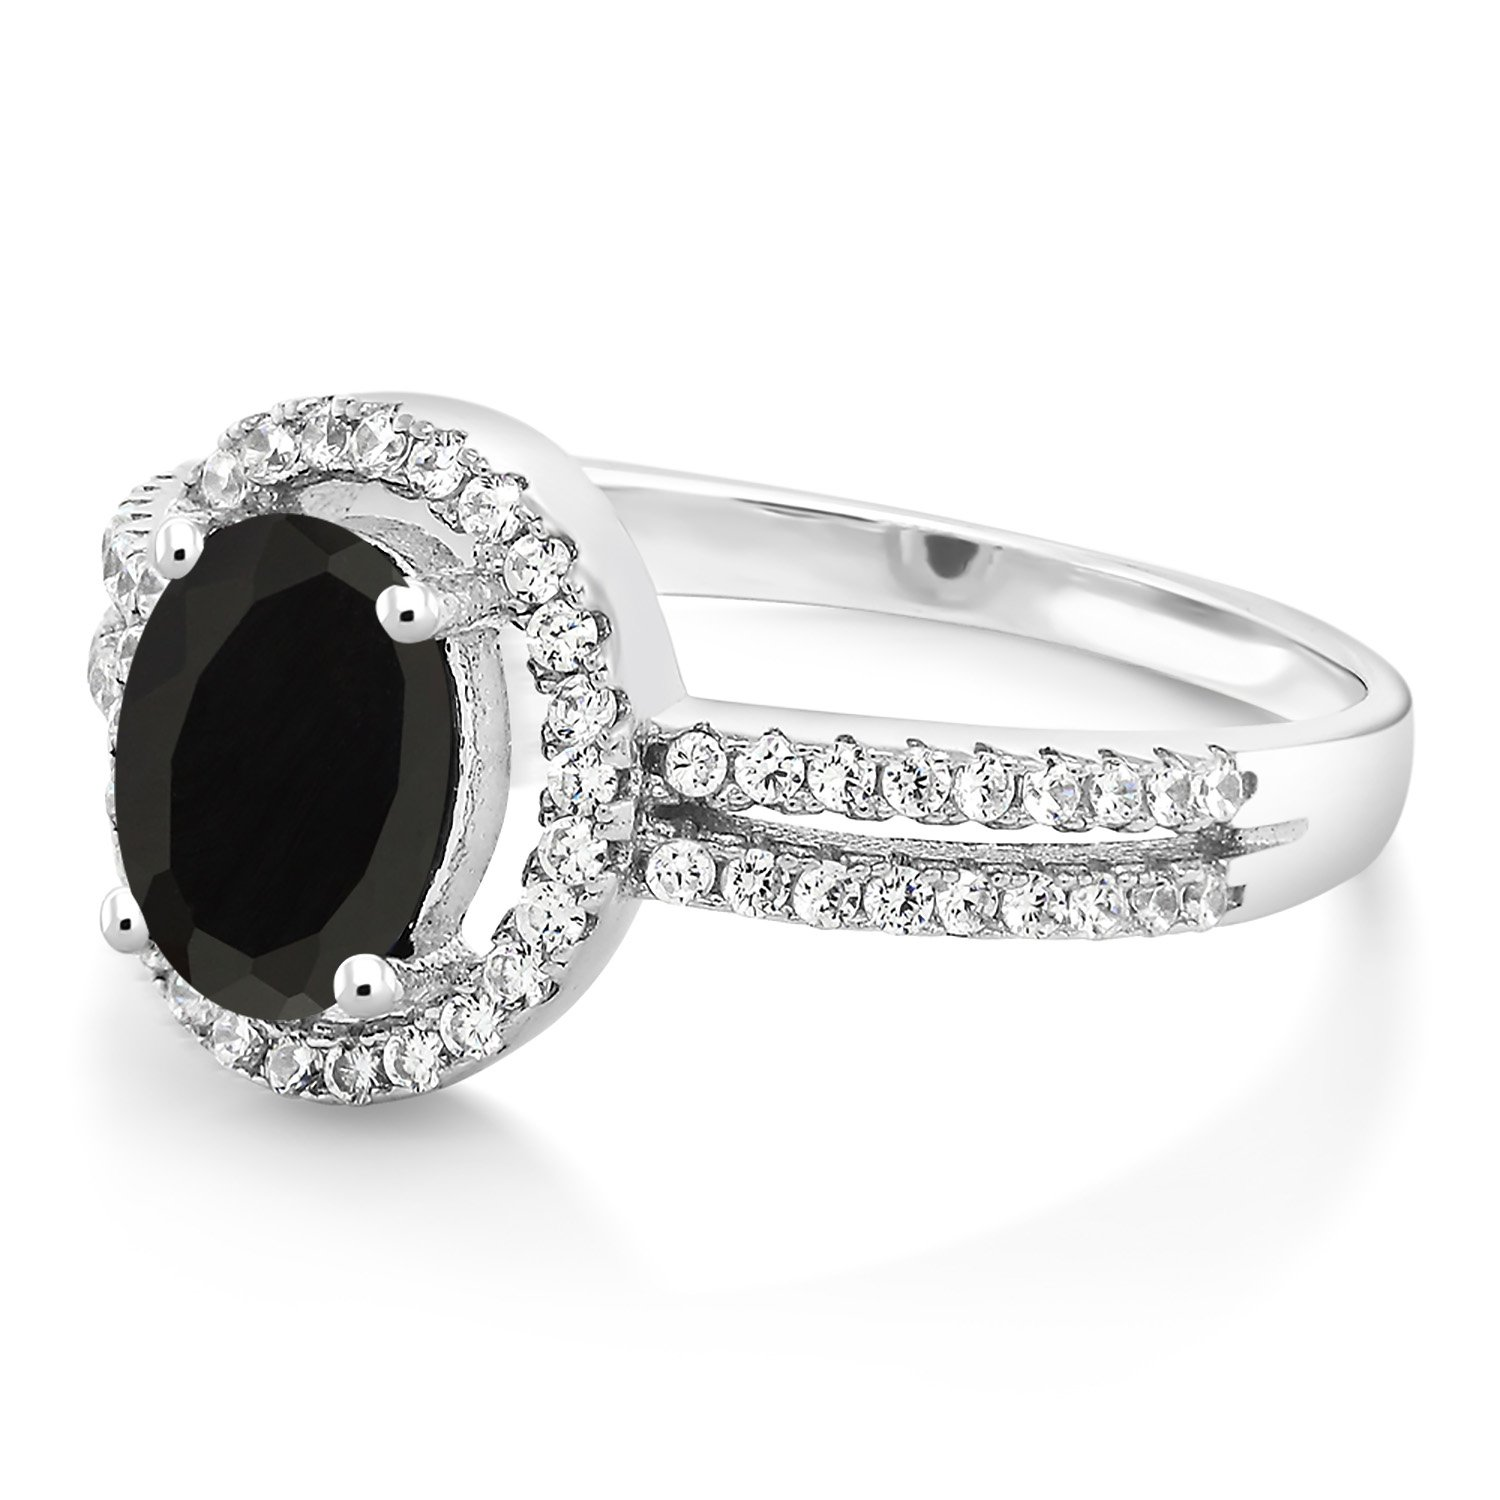 Gem Stone King 925 Sterling Silver Black Onyx Womens Ring 1.85 Ct Oval 8X6MM Gemstone Birthstone Available 5,6,7,8,9